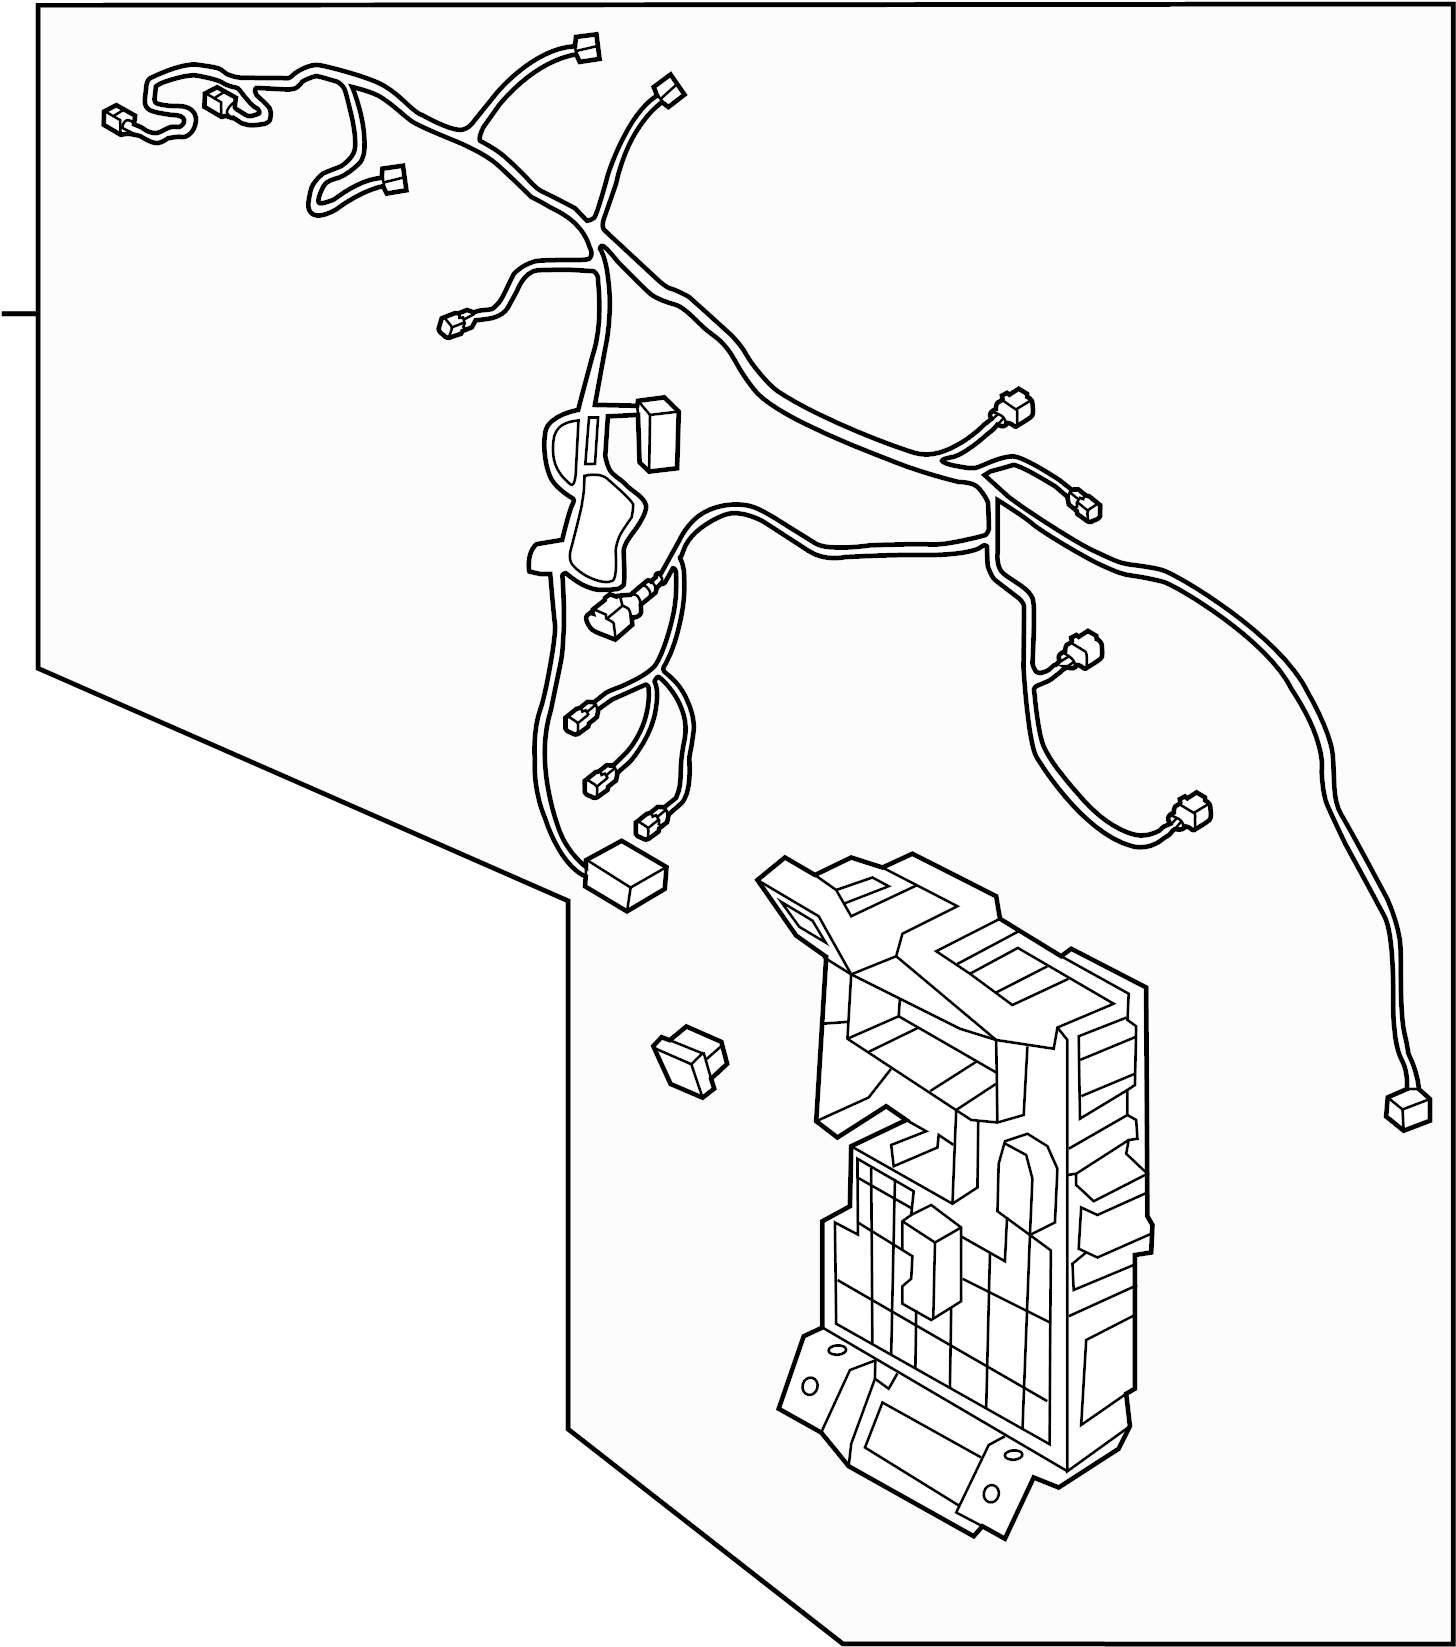 Hyundai Accent WIRING HARNESS. engine compartment